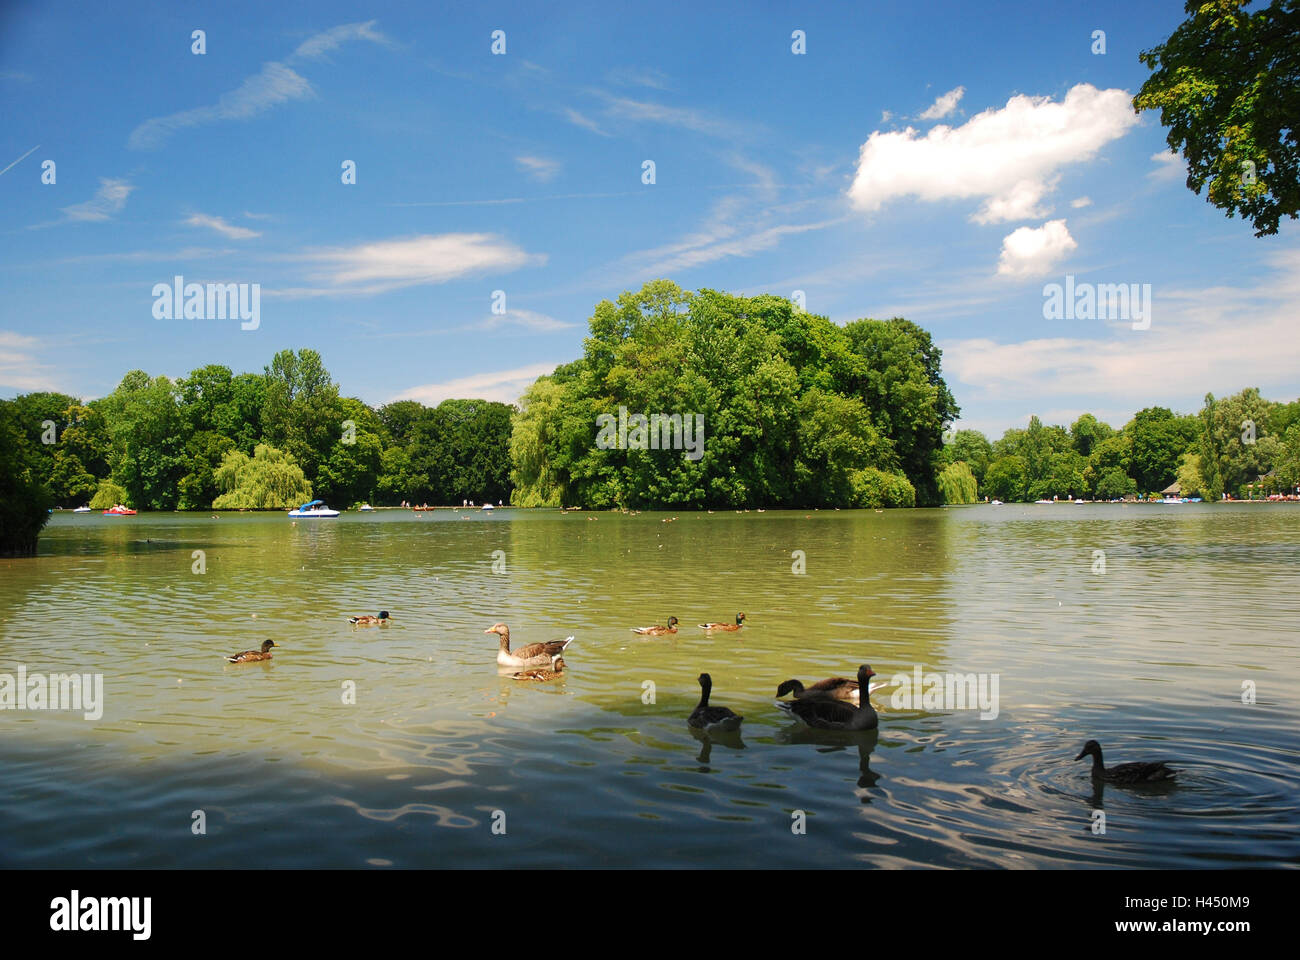 Germany, Bavaria, Munich, English garden, Kleinhesseloher lake, ducks, geese, - Stock Image